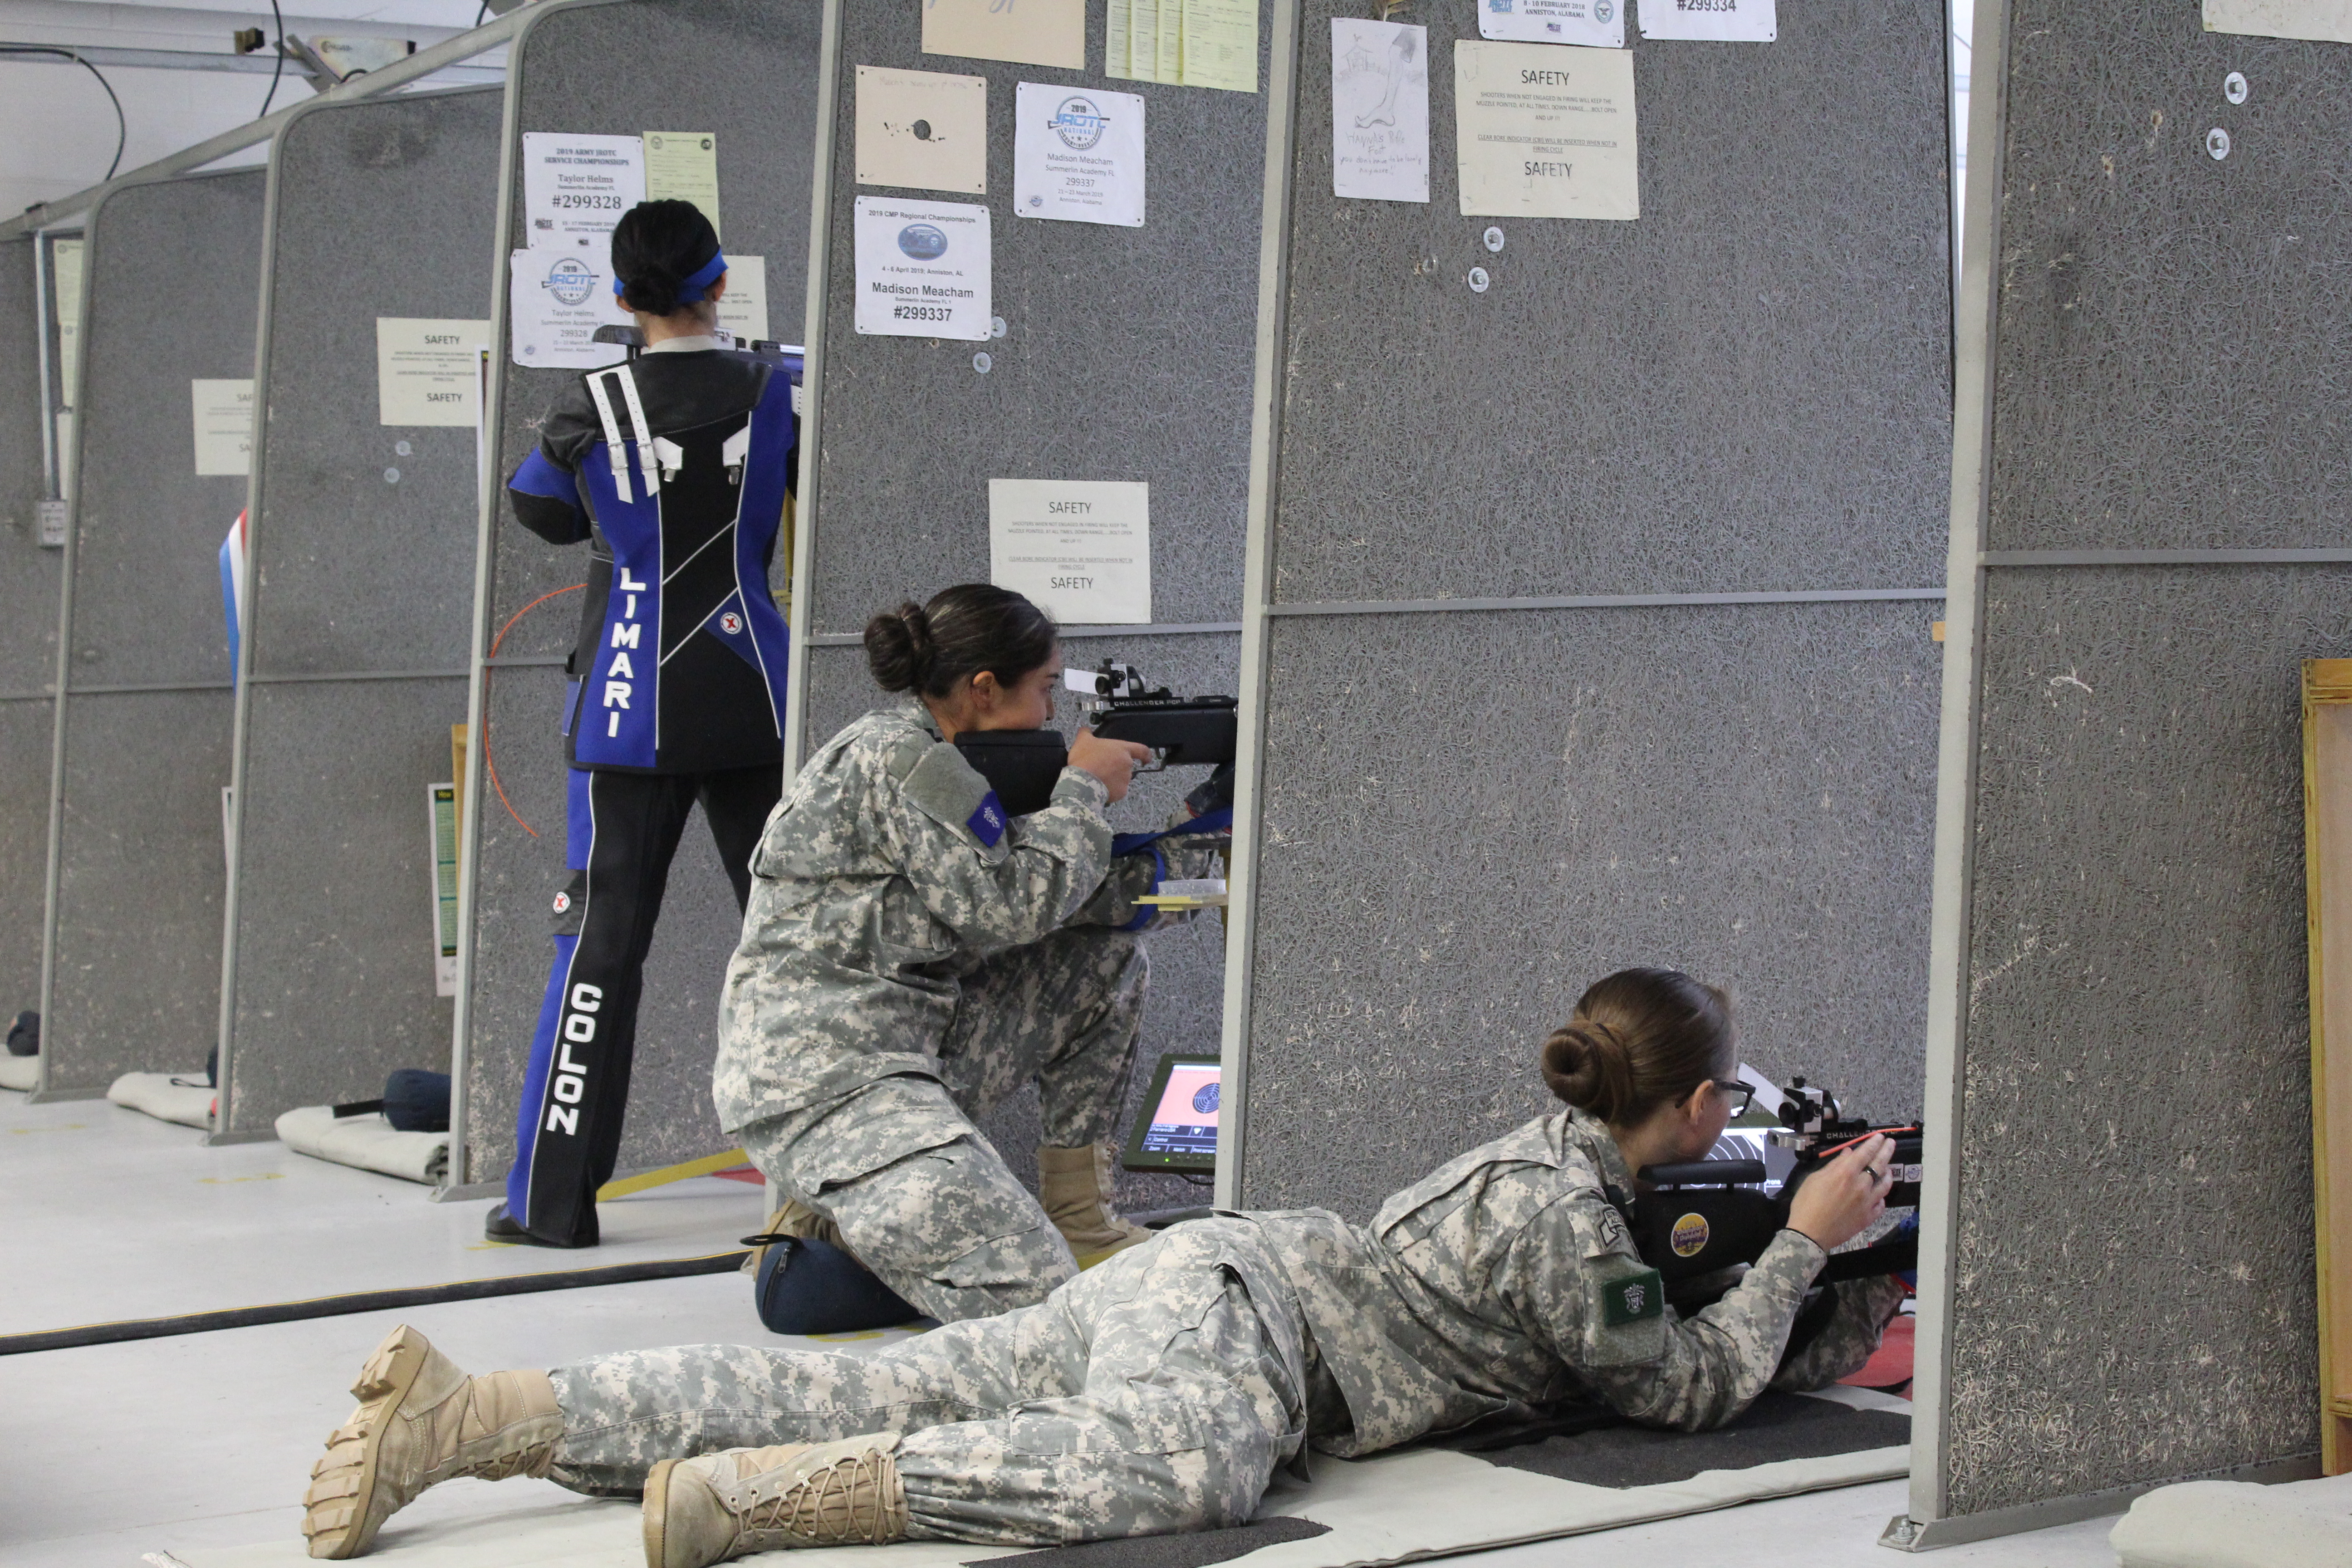 Three students practicing rifle shooting in an indoor shooting range.